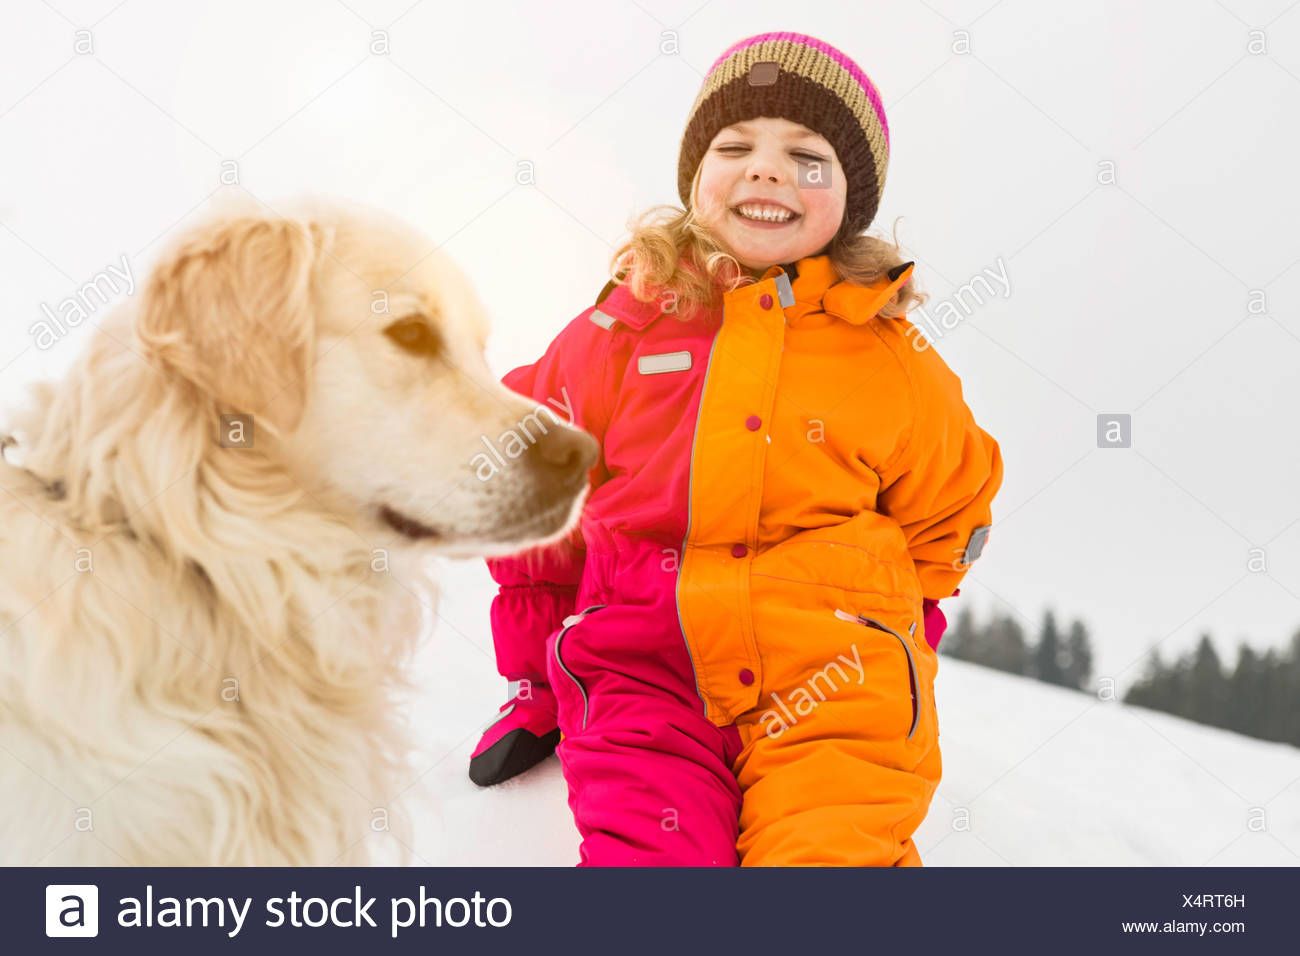 Girl wearing winter clothing with dog - Stock Image